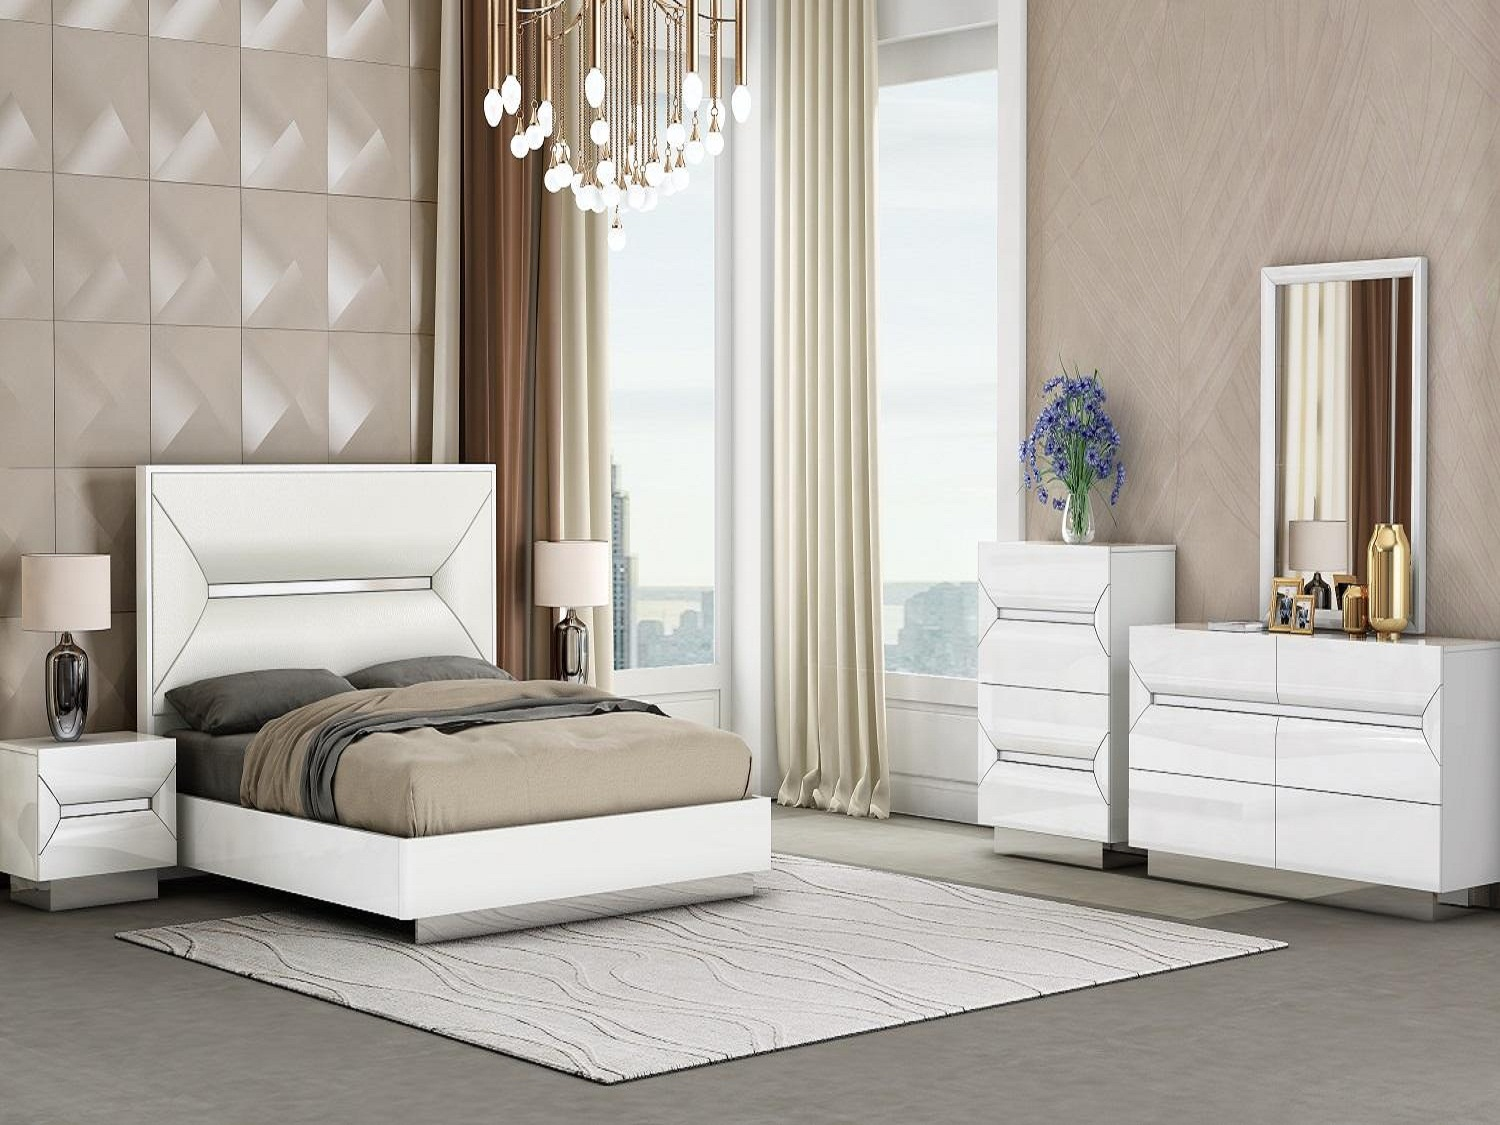 Modern Cypress White 6 PC Queen Bedroom Set, 1071, Bedroom Sets, Modern Cypress White 6 PC Queen Bedroom Set from Mega